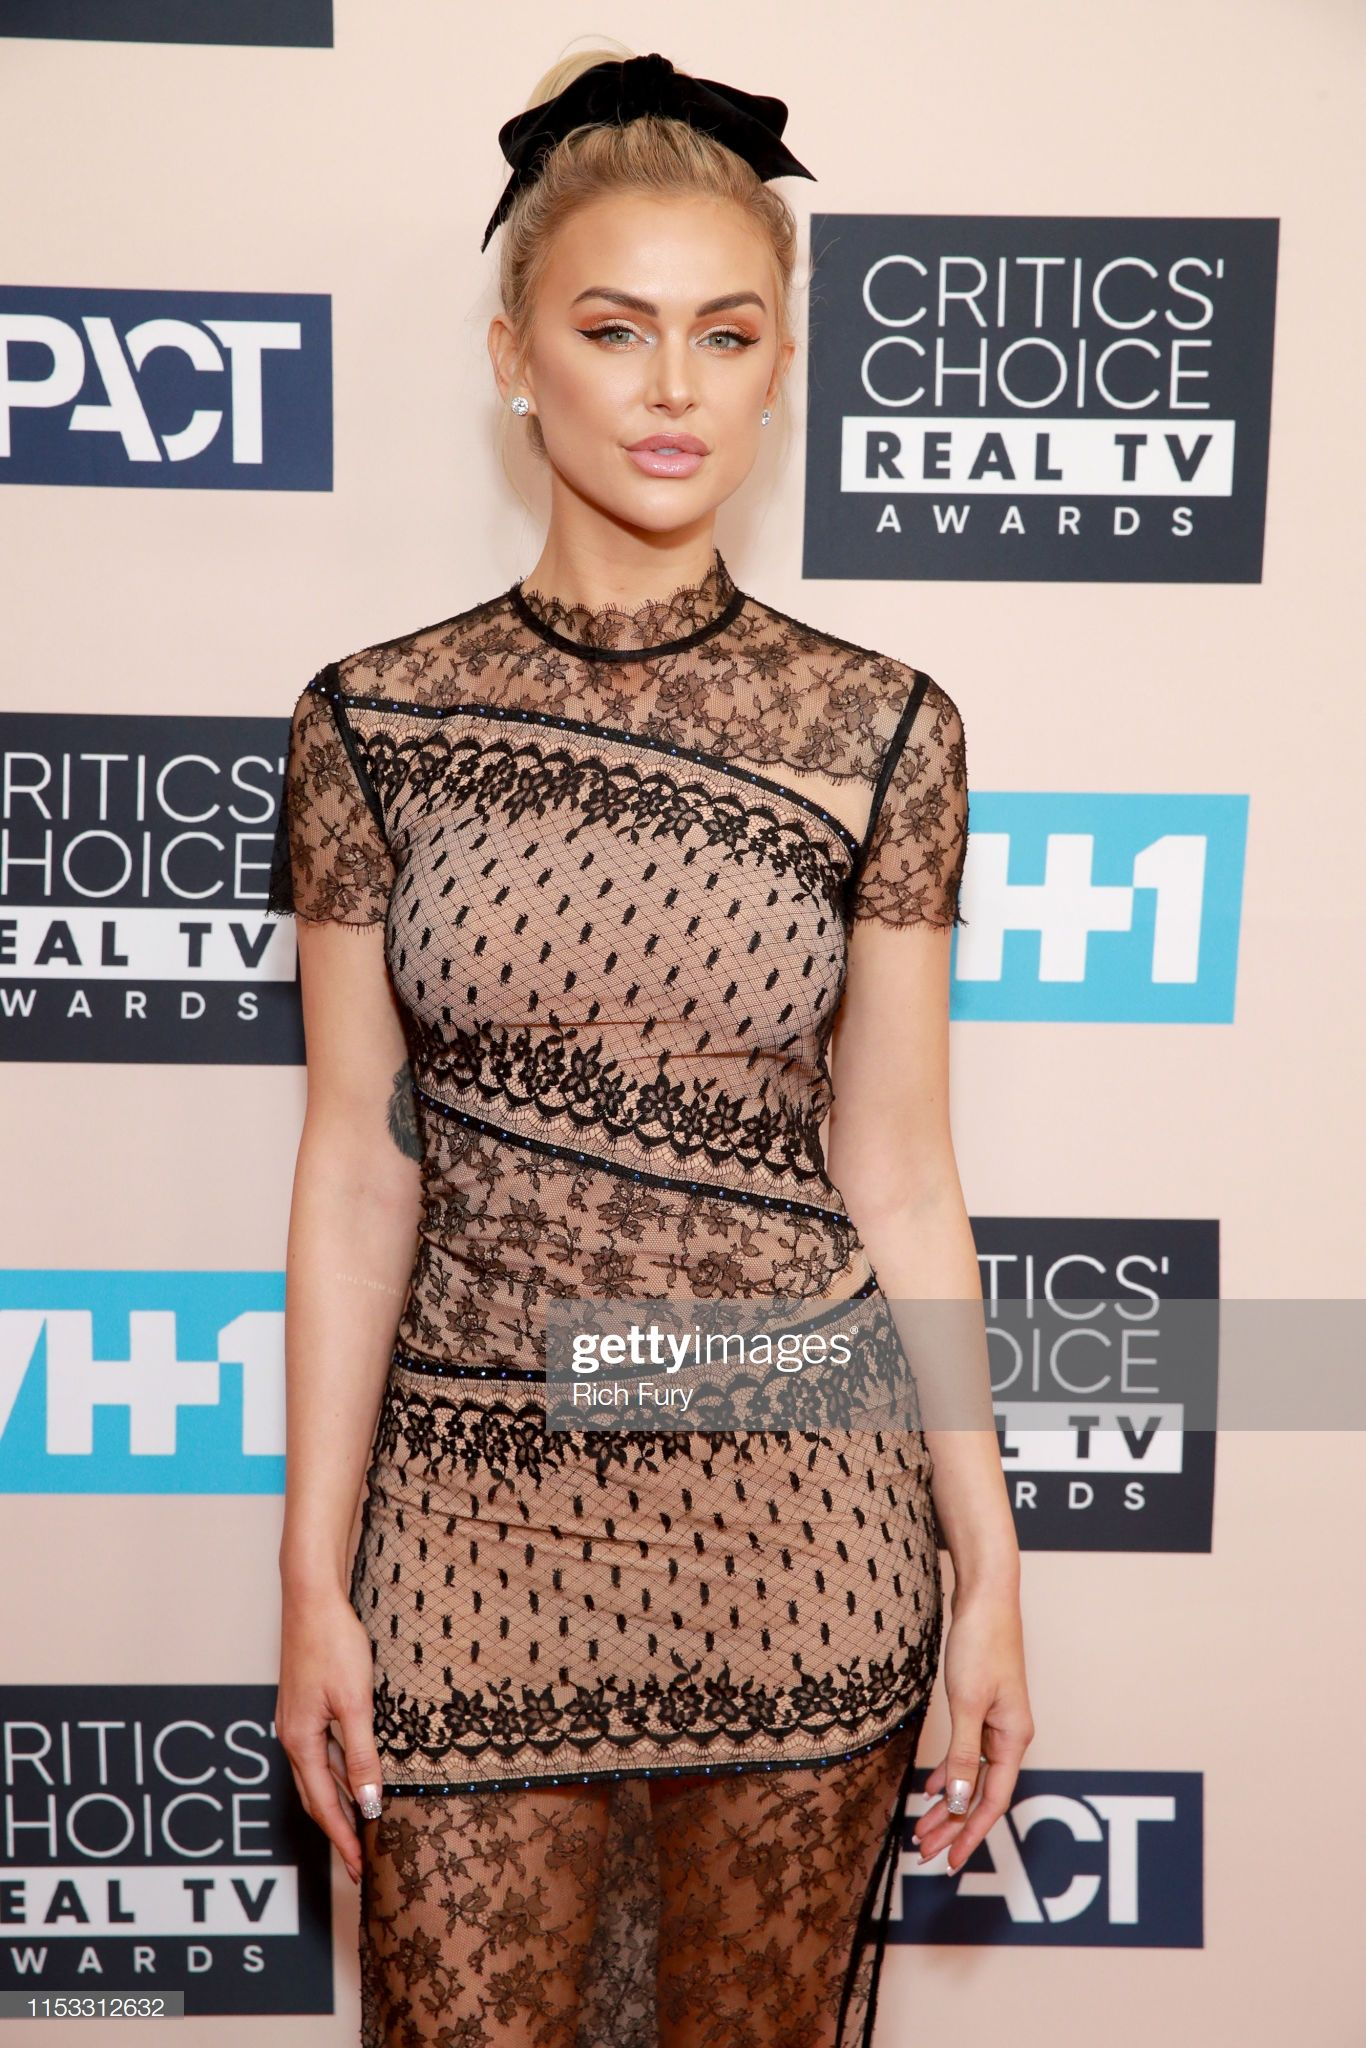 Lala Kent attends Critics Choice Real TV Awards in nude